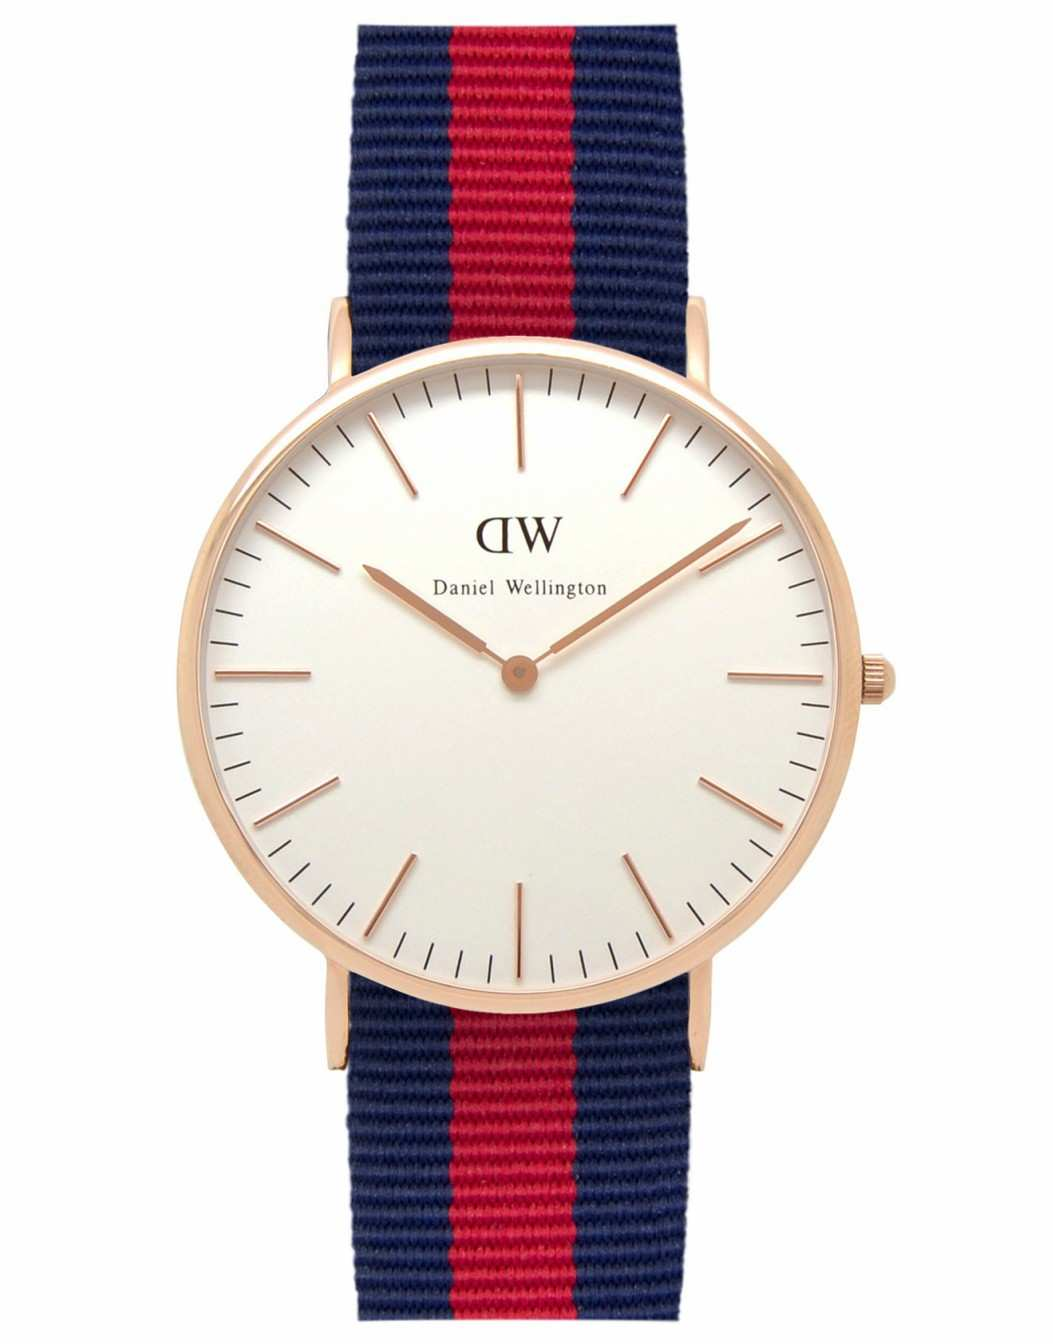 DANIEL WELLINGTON 0101DW Mens Oxford Watch Navy